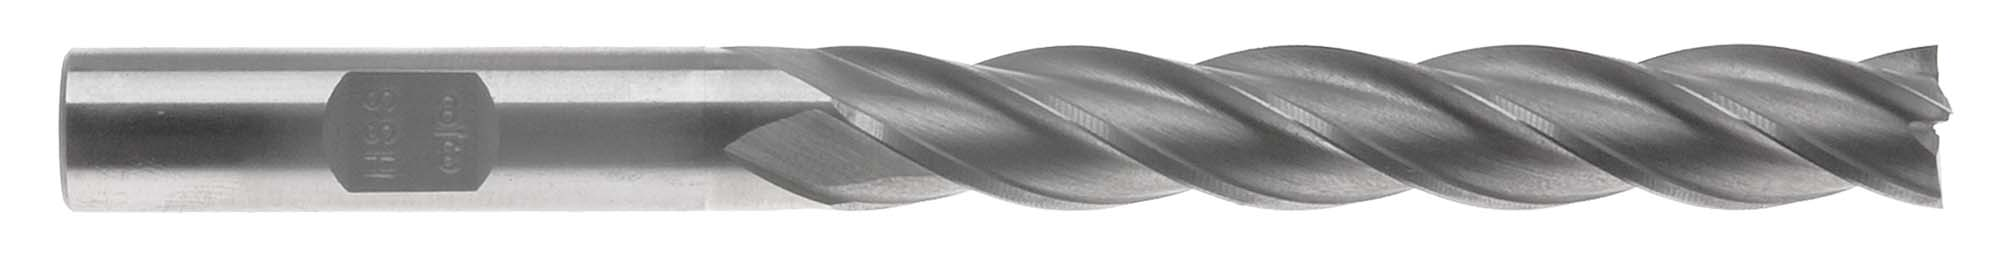 "EM-FX24X  3/4"" 4 Flute Extra Long End Mill- 1/2"" Shank, High Speed Steel"